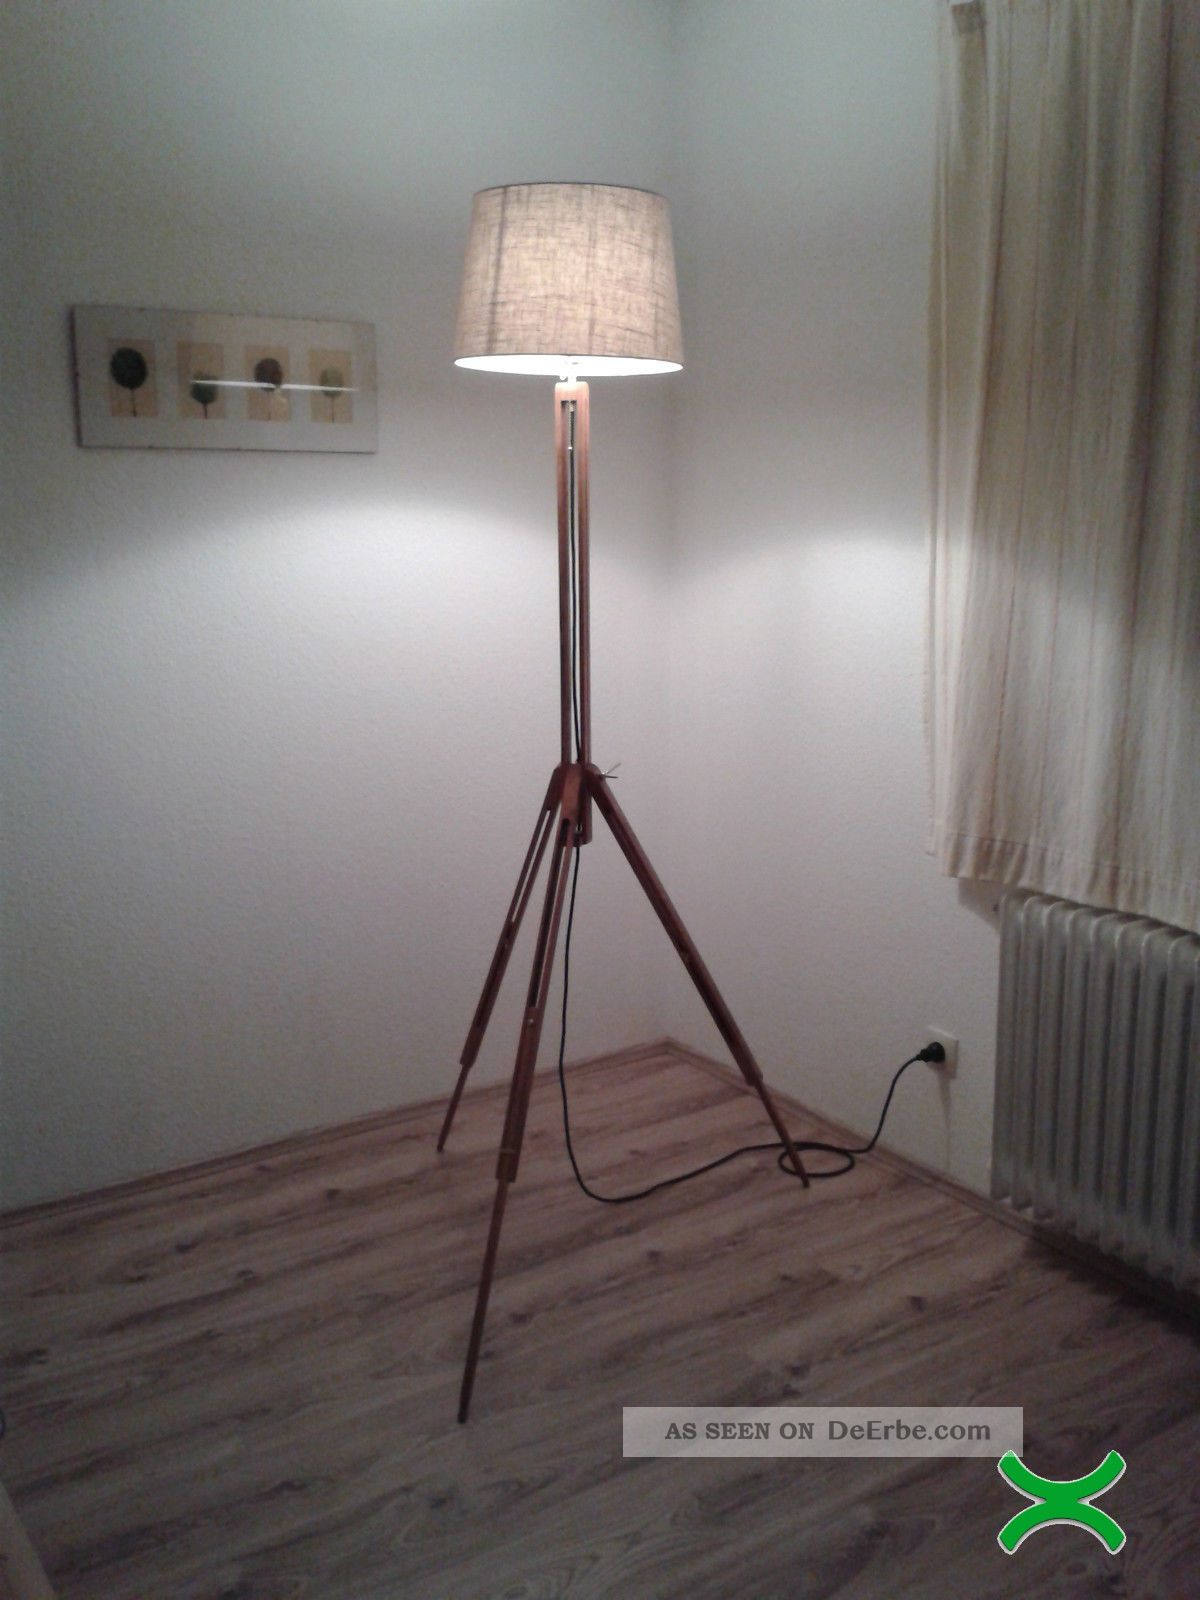 design lampe stehlampe bauhaus tripod lamp kugel architekt. Black Bedroom Furniture Sets. Home Design Ideas